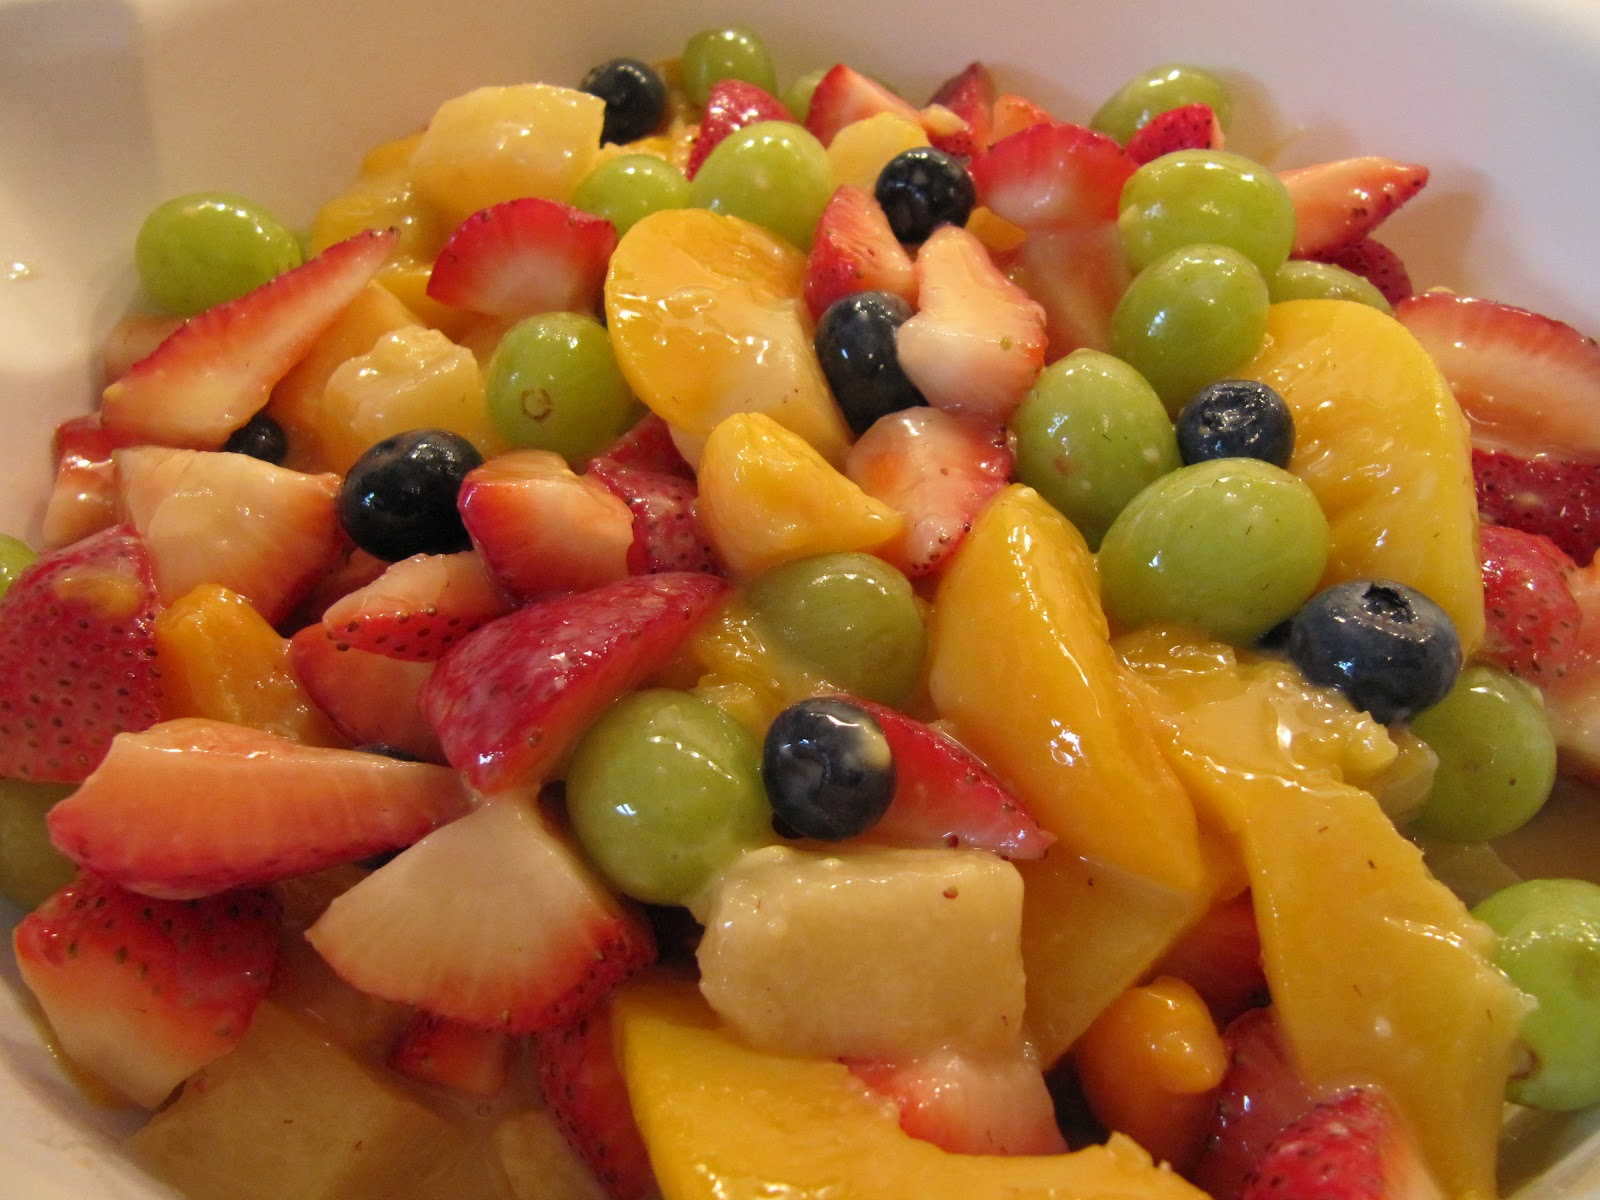 Fruit Salad Recipe Tree With Ice Cream Decoration Ideas With Whipped